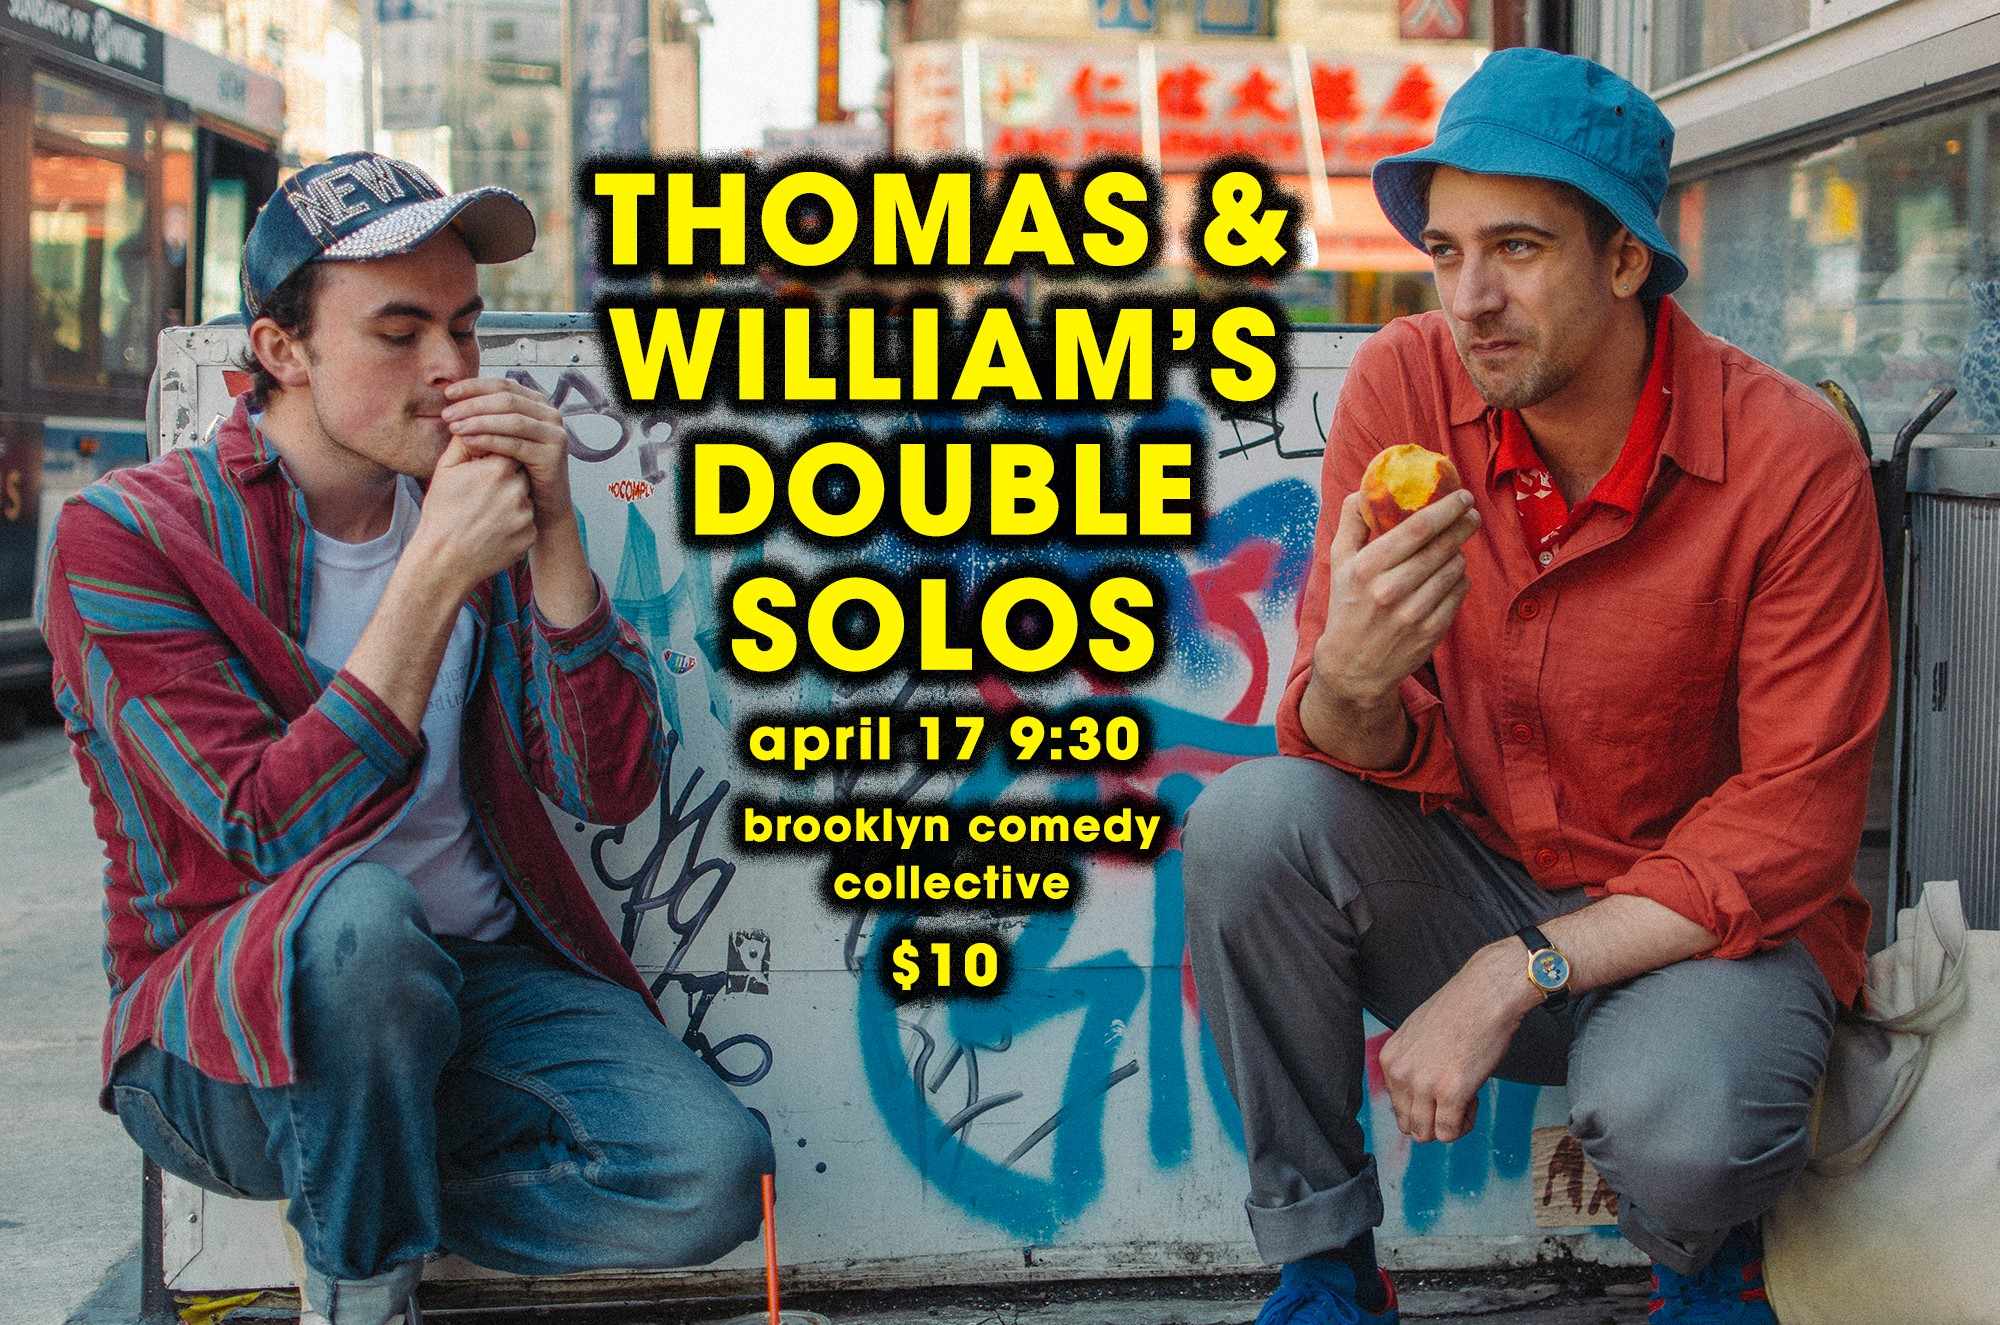 Wed, Apr 17 @ 9:30   After a successful preview of their respective shows, Thomas Frances (Ground Floor Comedy, Wet Tux) and William Banks (LISA, A Crazy Amazing Friendship) will premiere their  Thomas & William's Double Solos  at Brooklyn Comedy Collective on Wednesday, April 17th at 9:30 PM. Their two solo sets derive from the most absurd areas of their life, often taking surreal steps into alternate universes where their best friends play the roles of William and Thomas.